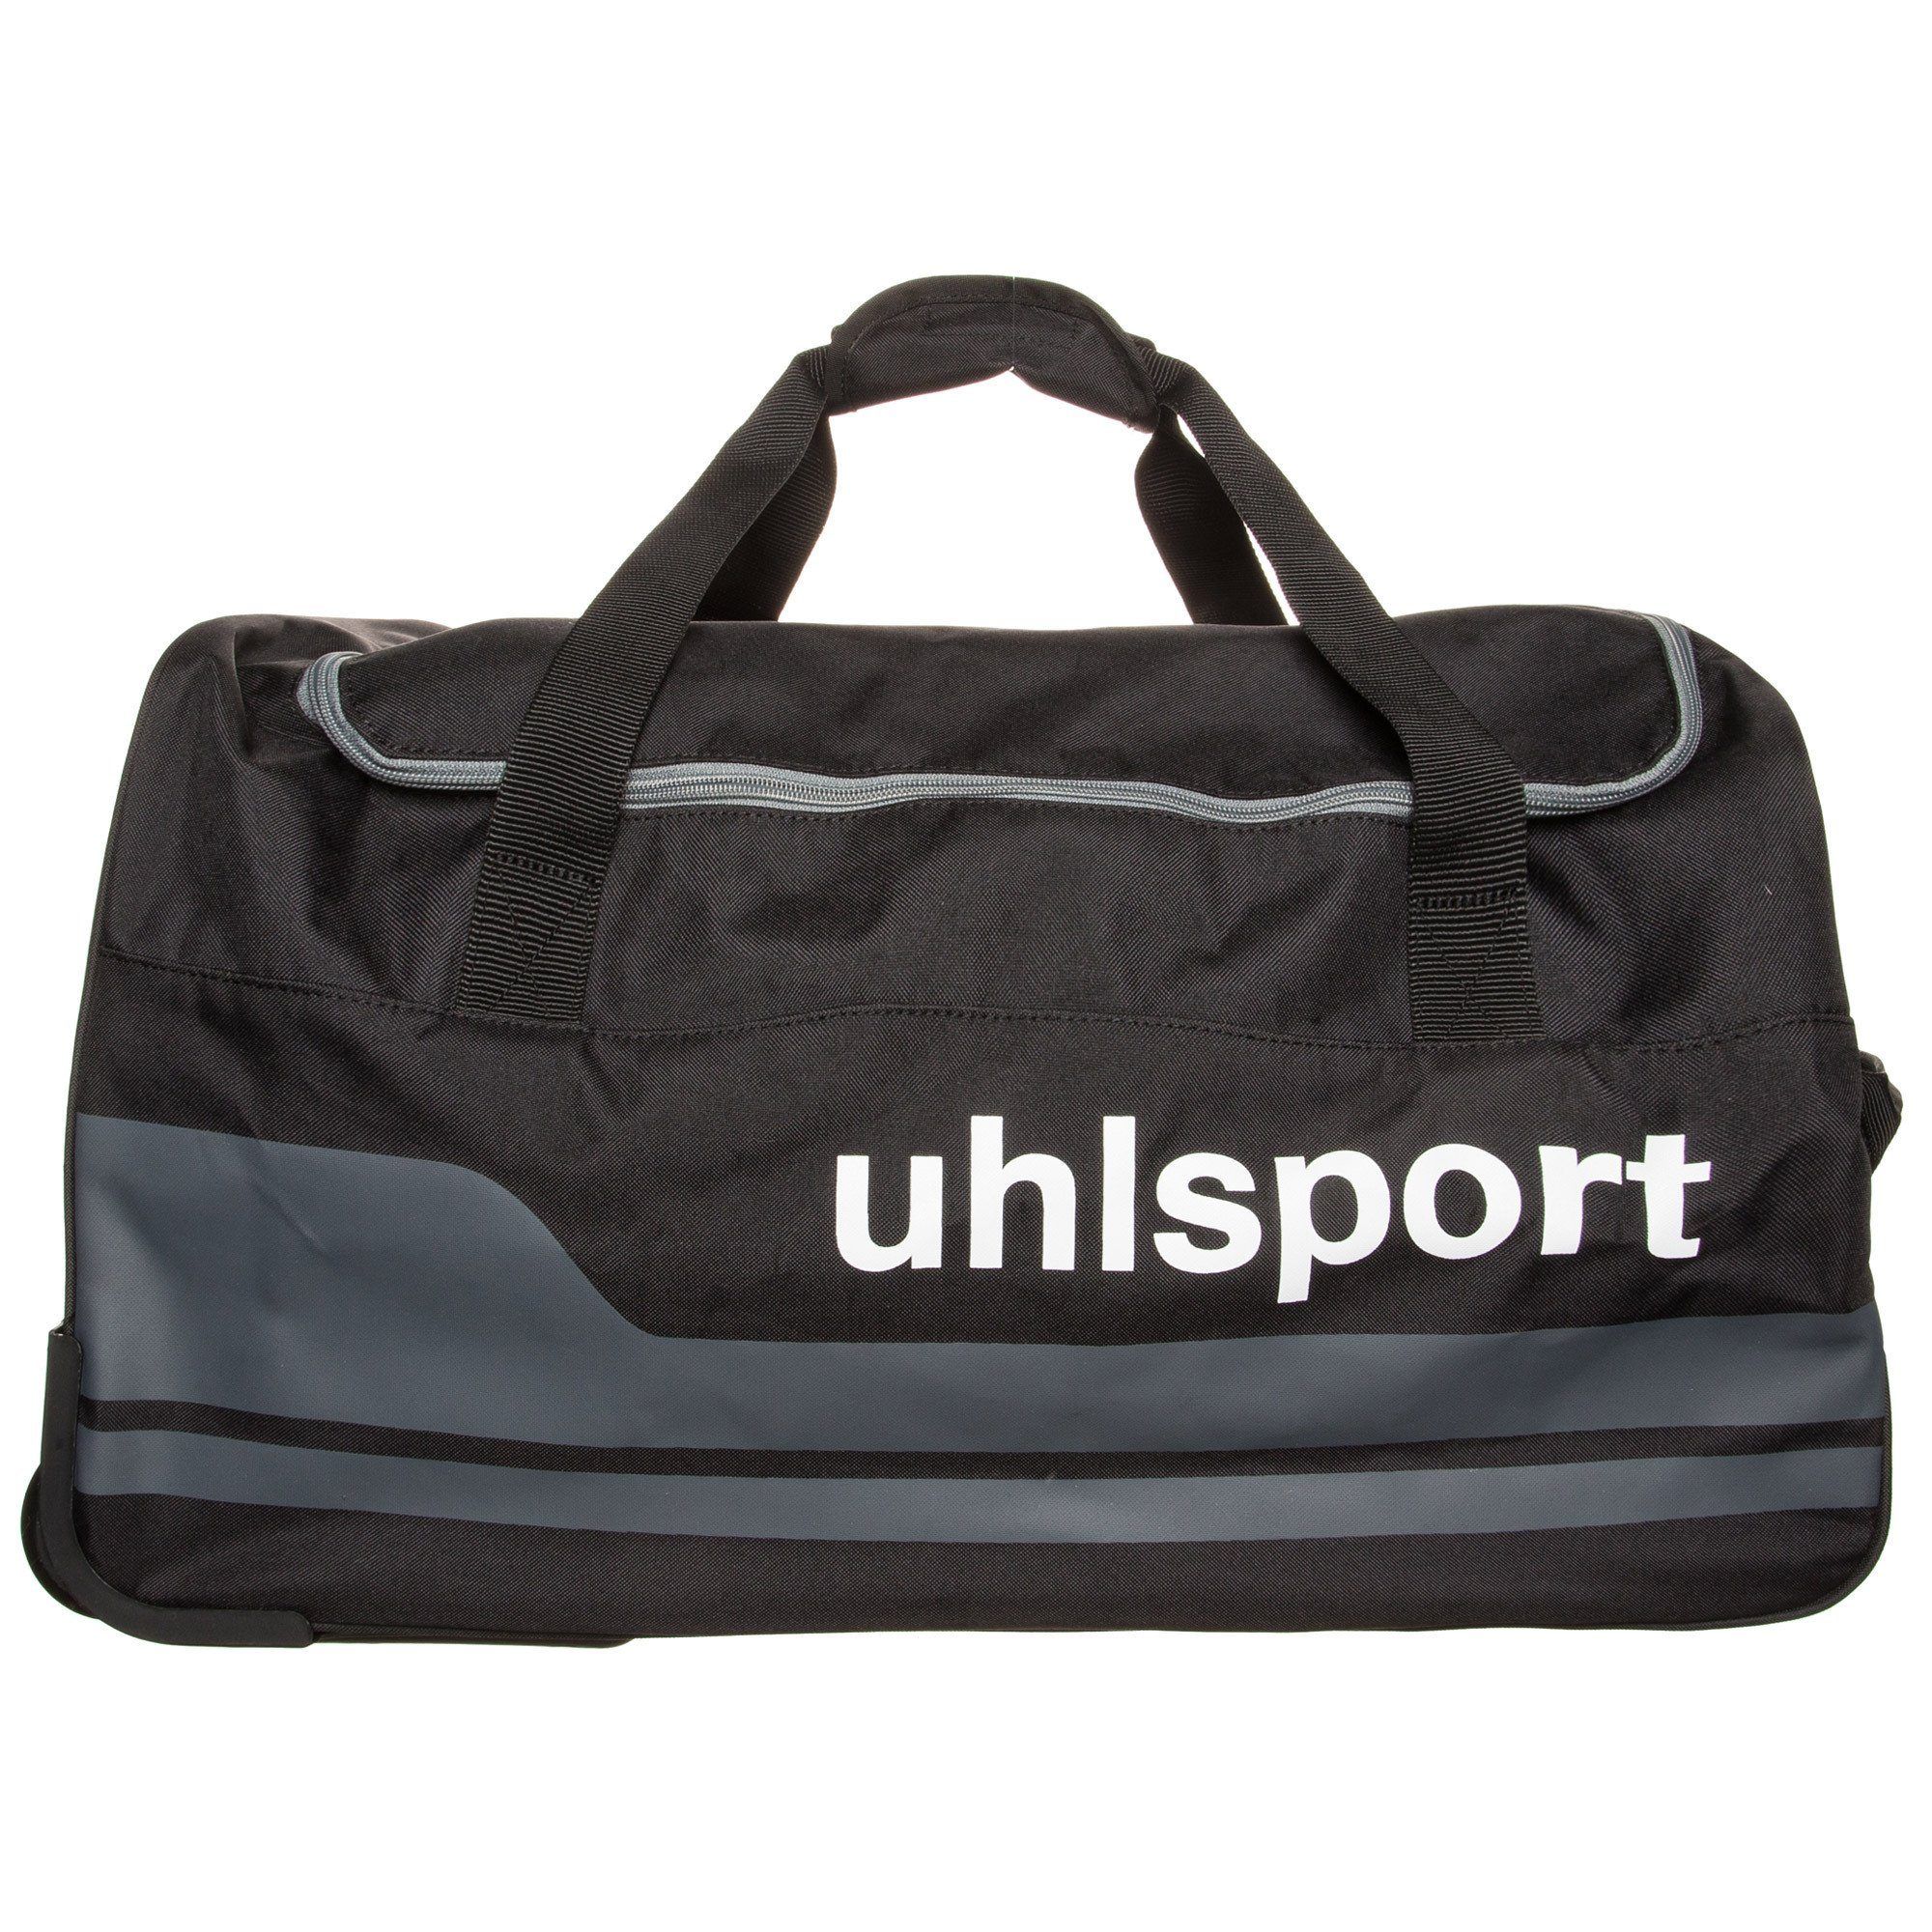 UHLSPORT Basic Line 2.0 60 L Travel Trolley